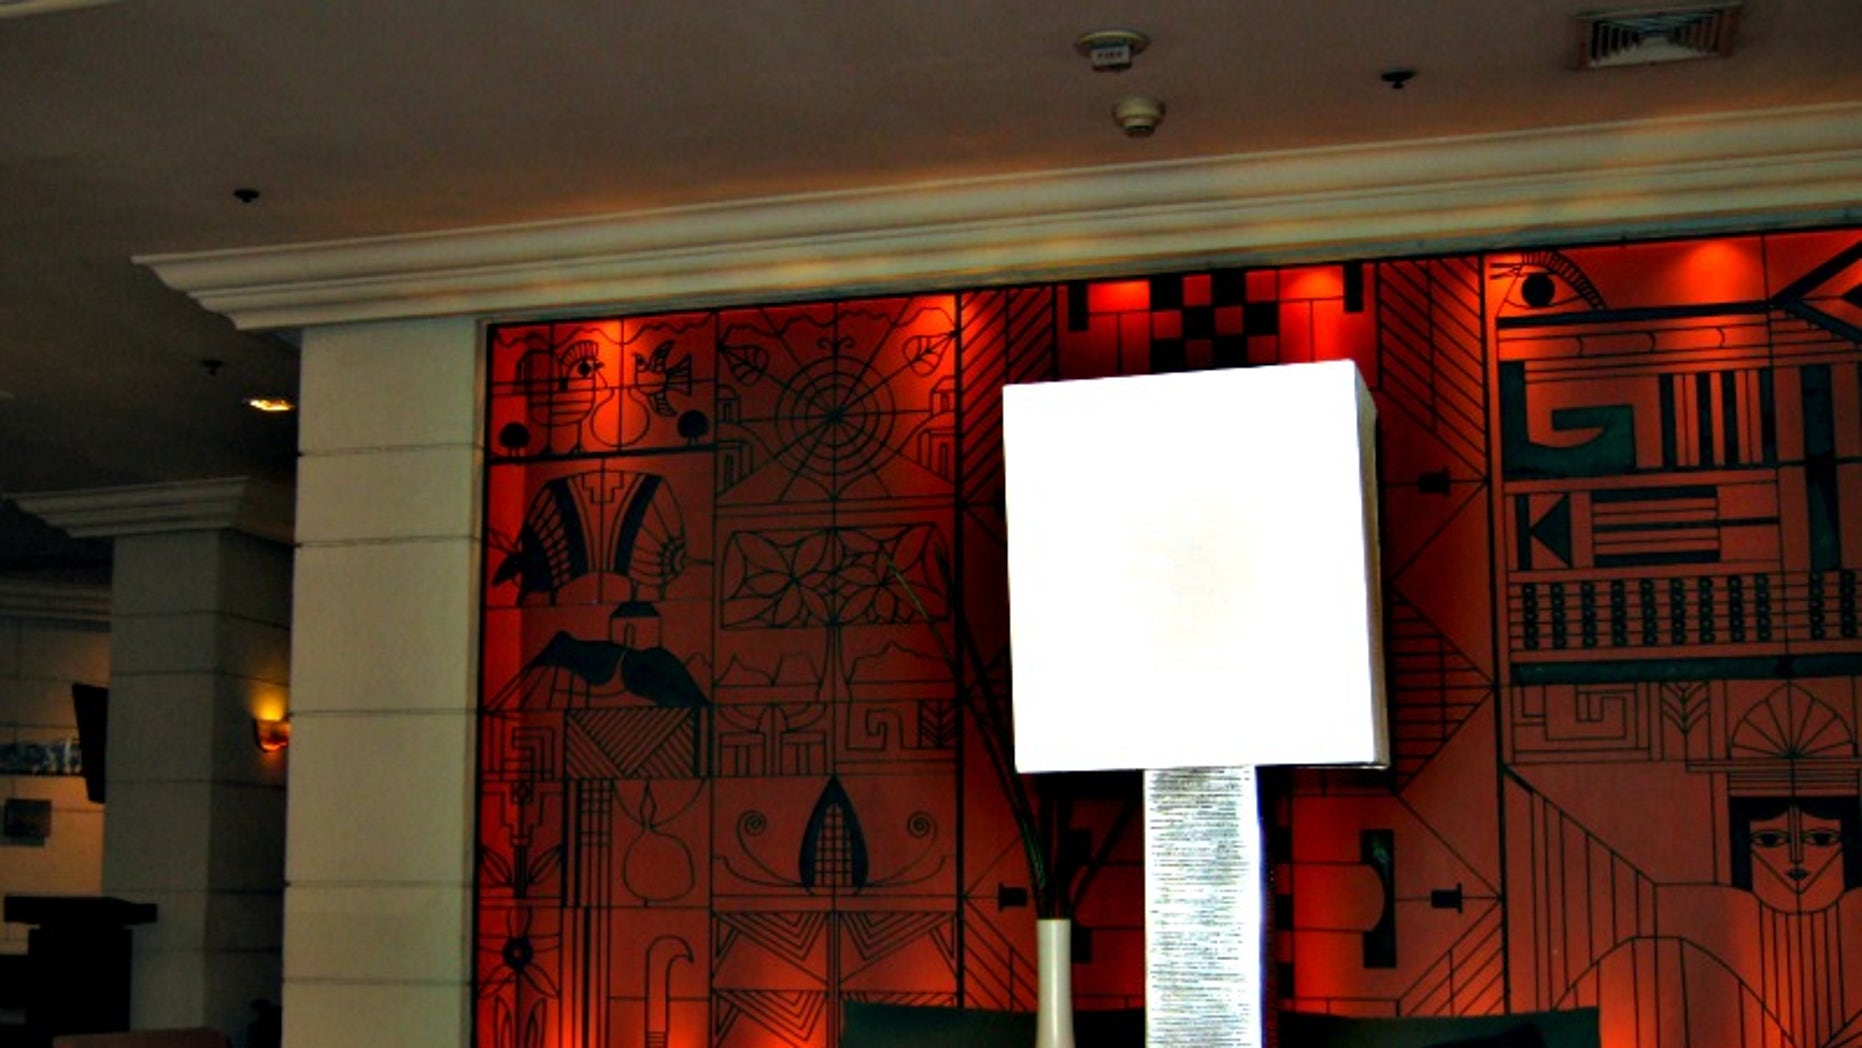 """Salvadoran artist Fernando Llort's work will soon be found in Plaza Barrios near the """"Hermano Lejano"""" monument. Here, Llort's art can be seen in Hotel Intercontinental's lobby."""